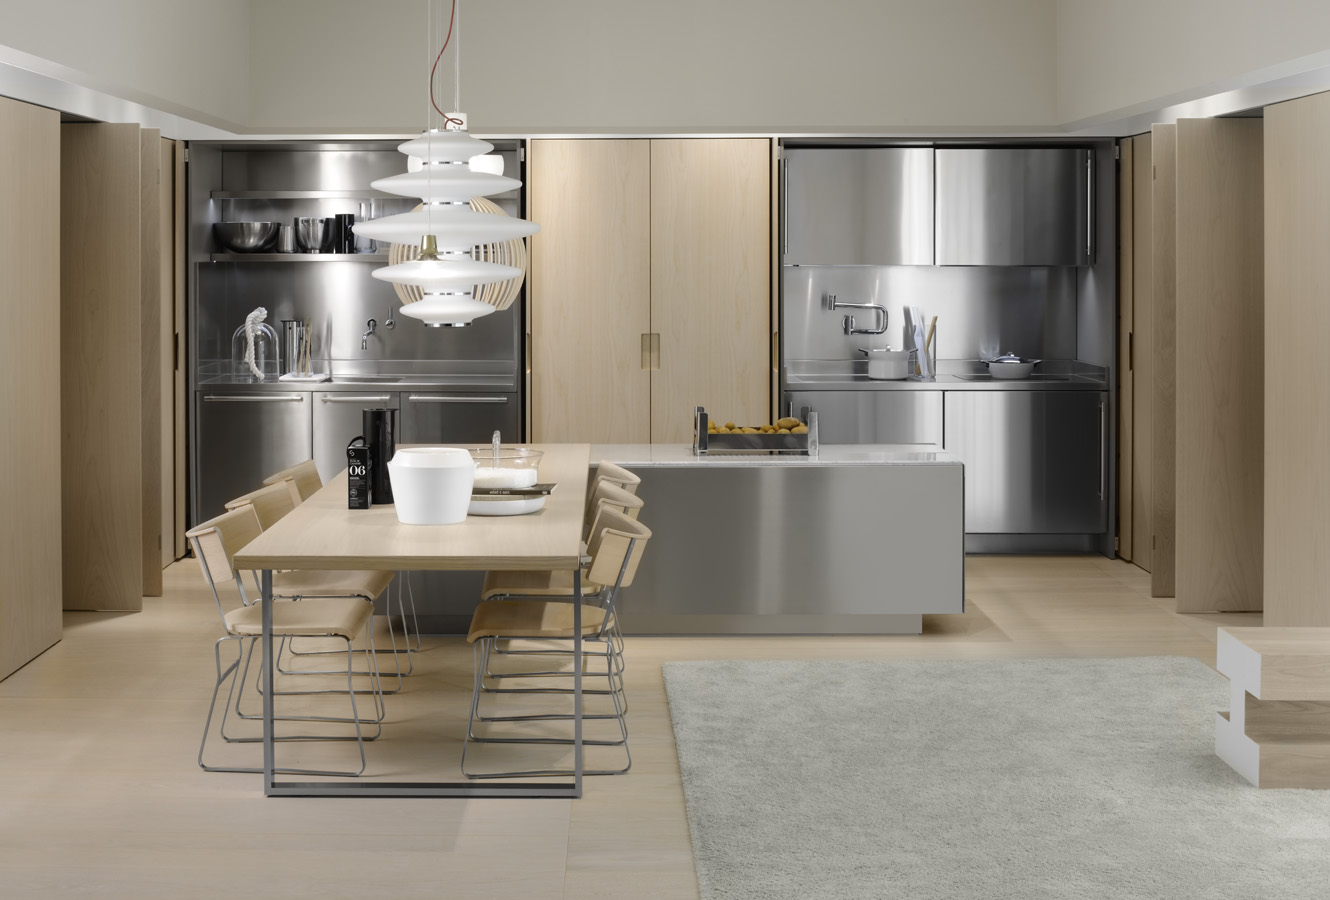 Modern italian kitchen design from arclinea - Italian kitchen ...